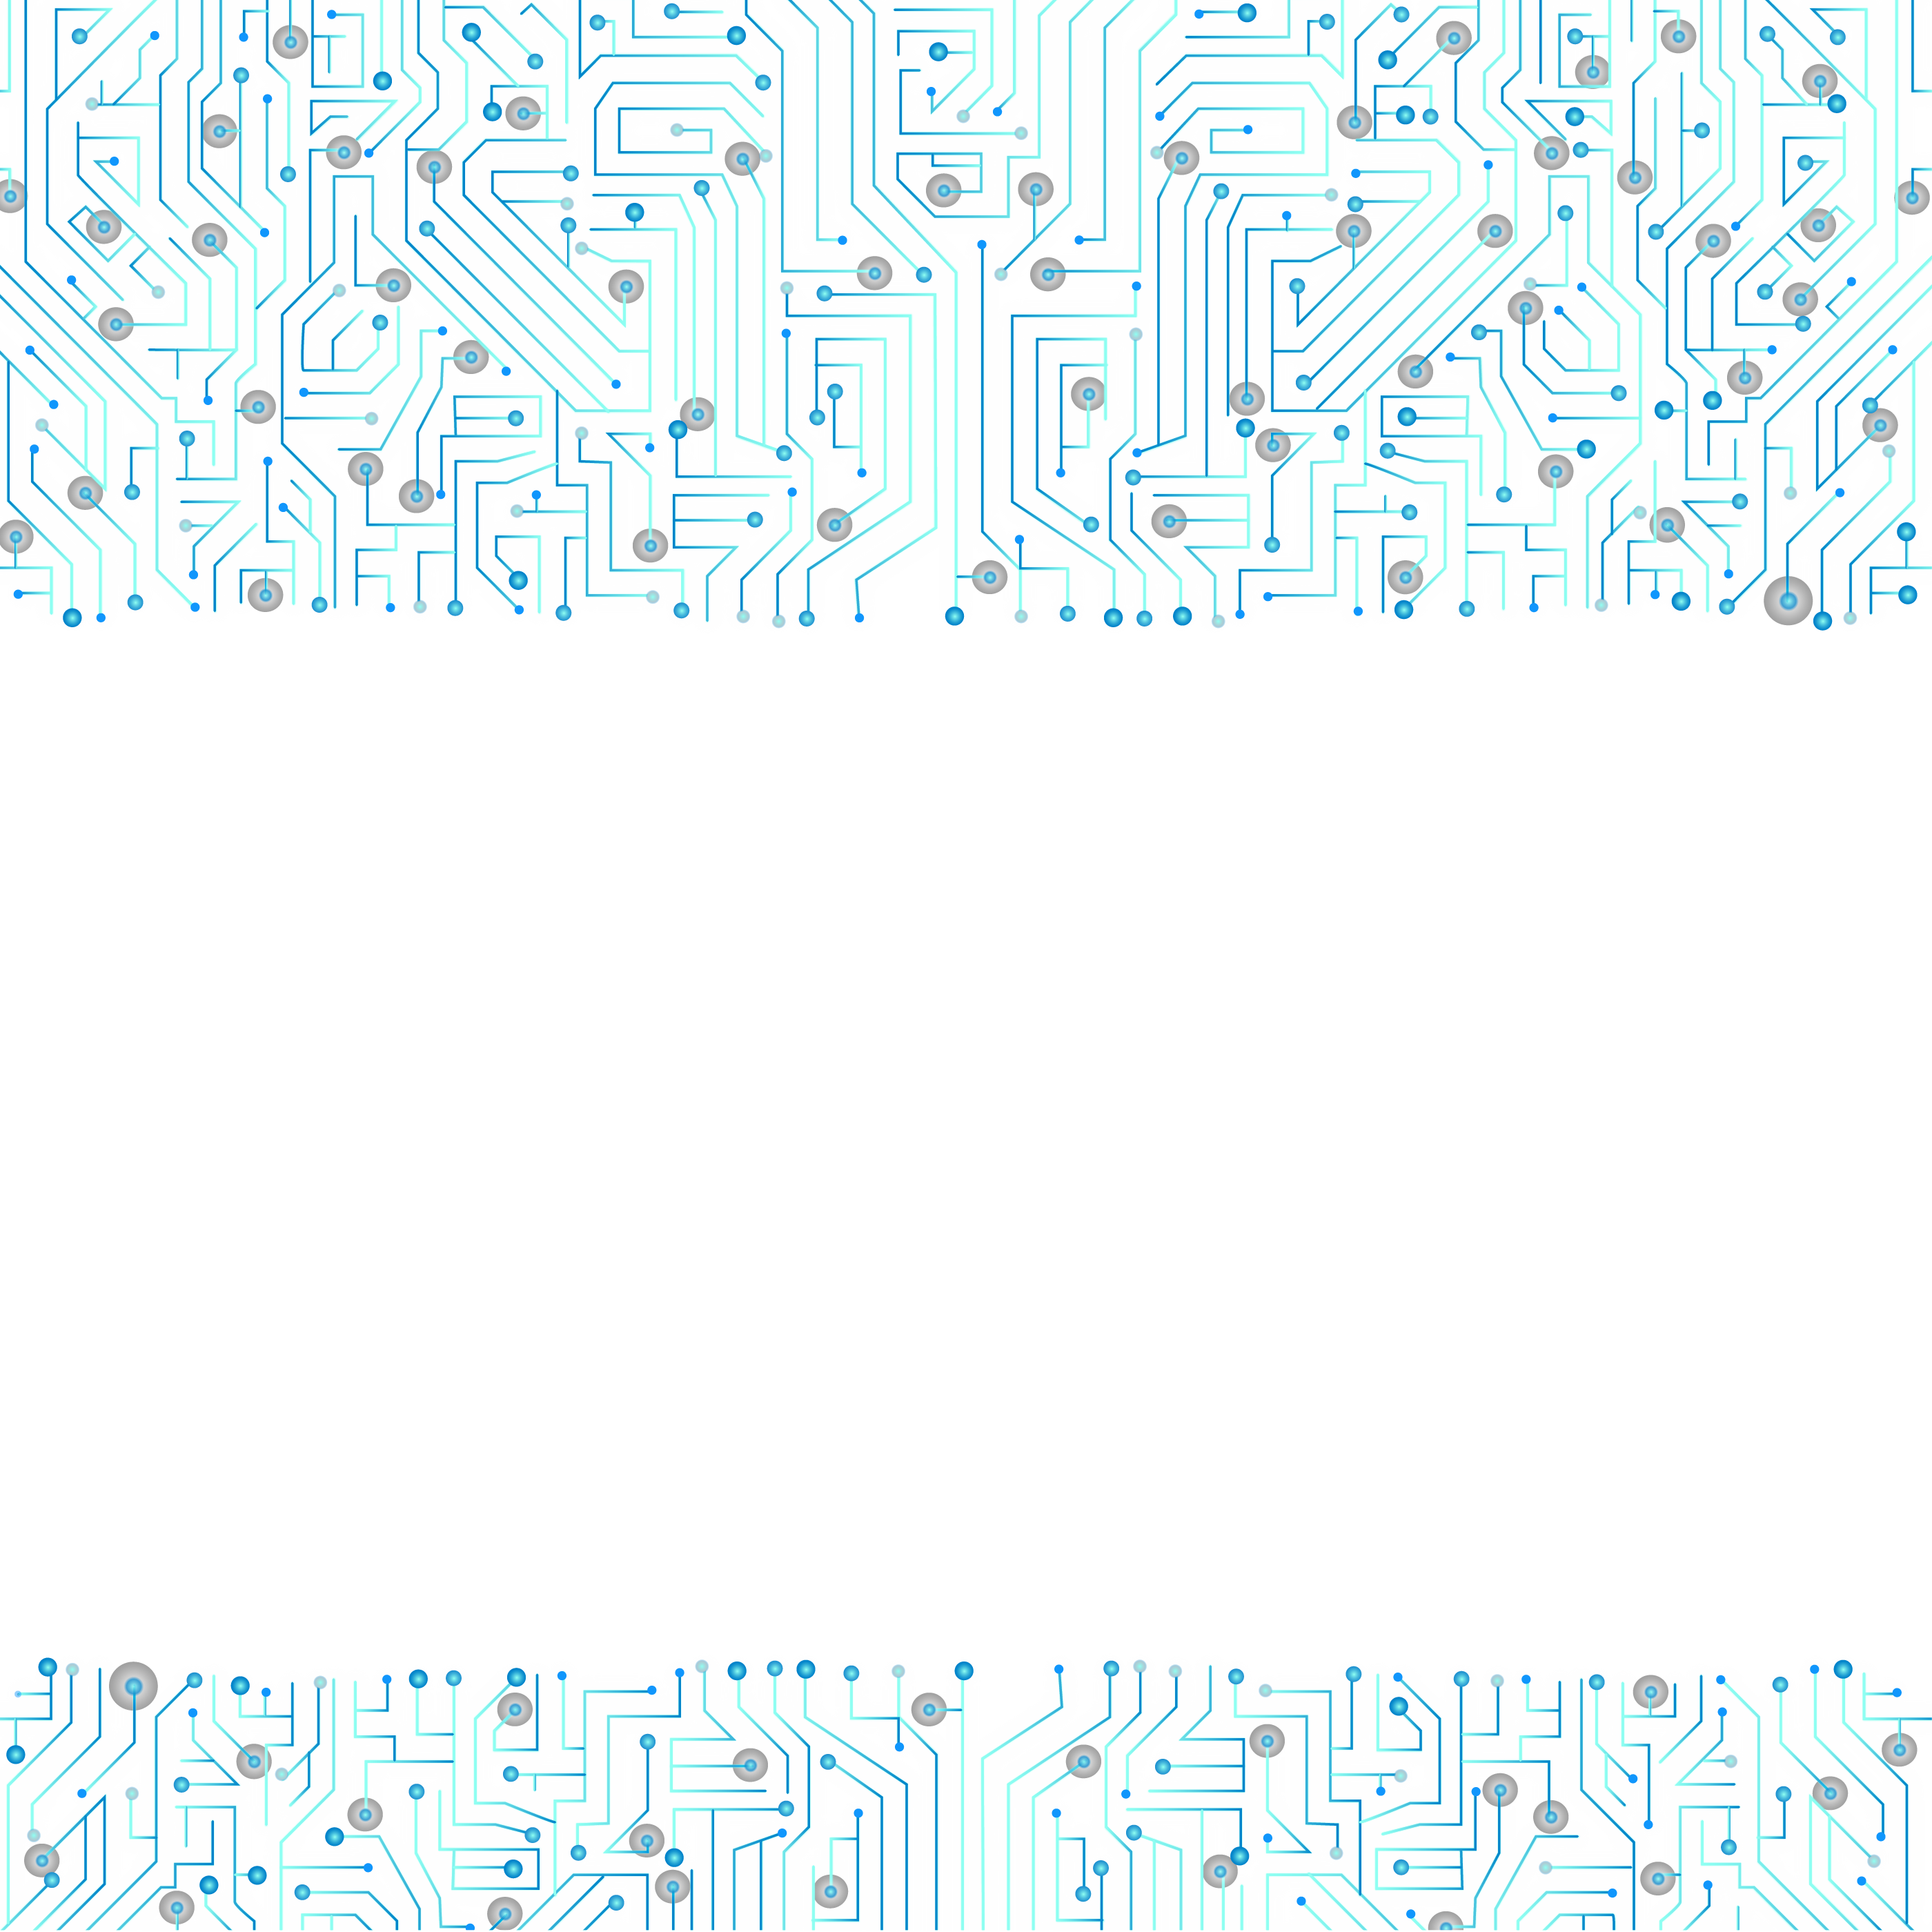 Circuit board png transparent. Electrical network diagram integrated